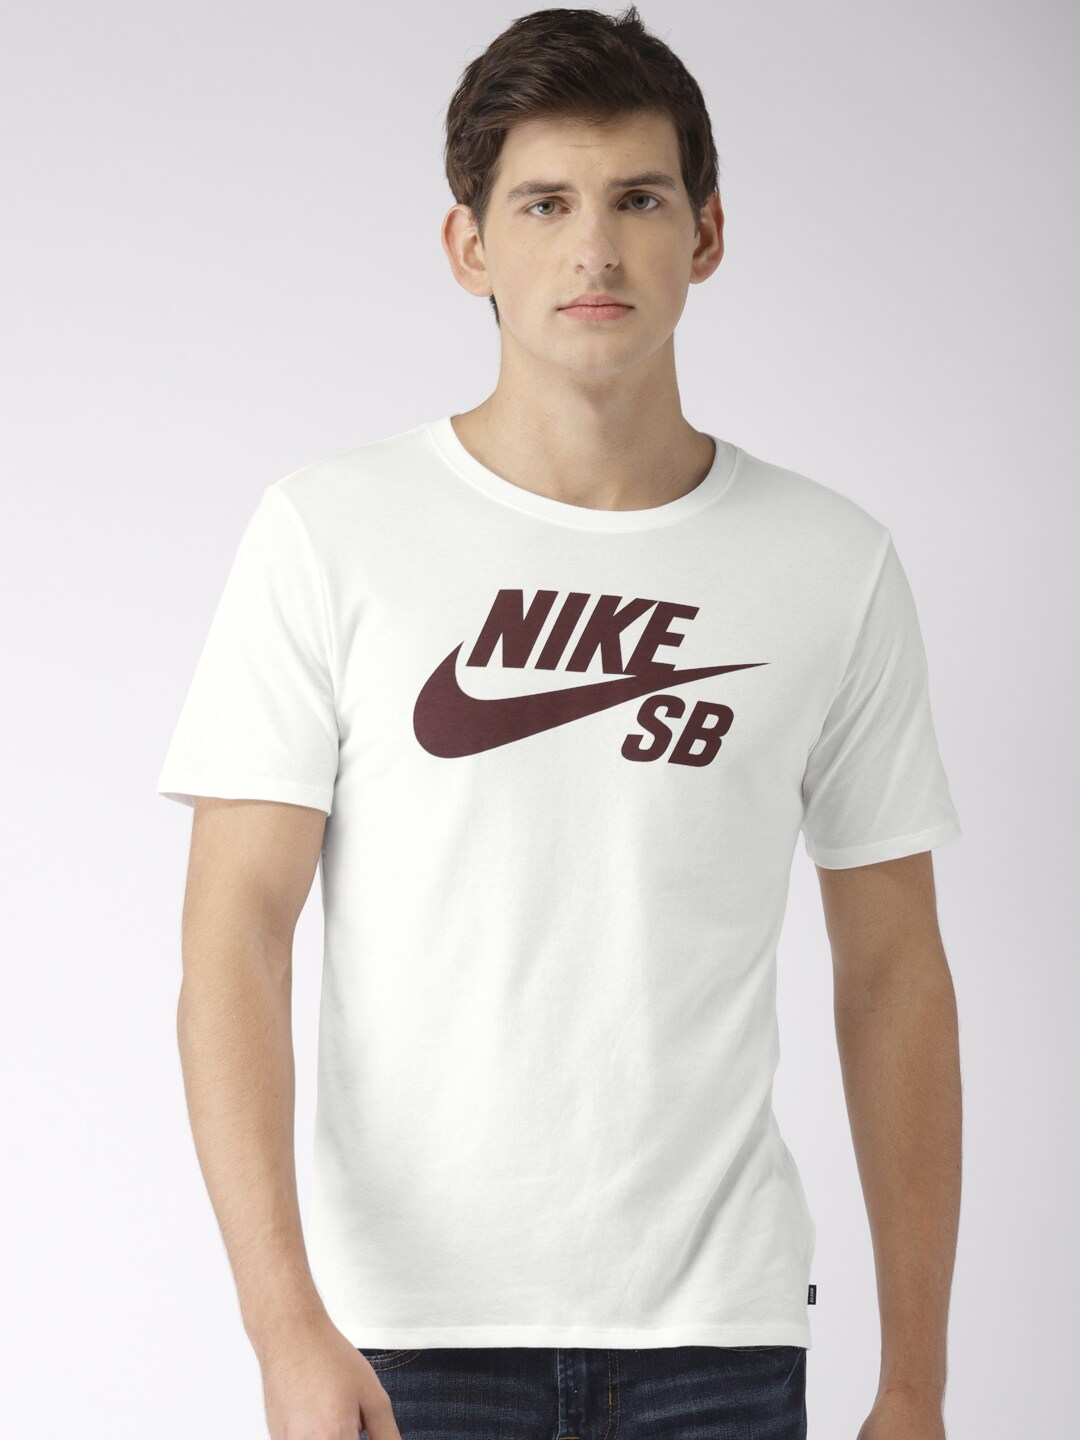 Nike Tshirts Buy T Shirts Online In India Myntra Baju Jeans By Henni Collection